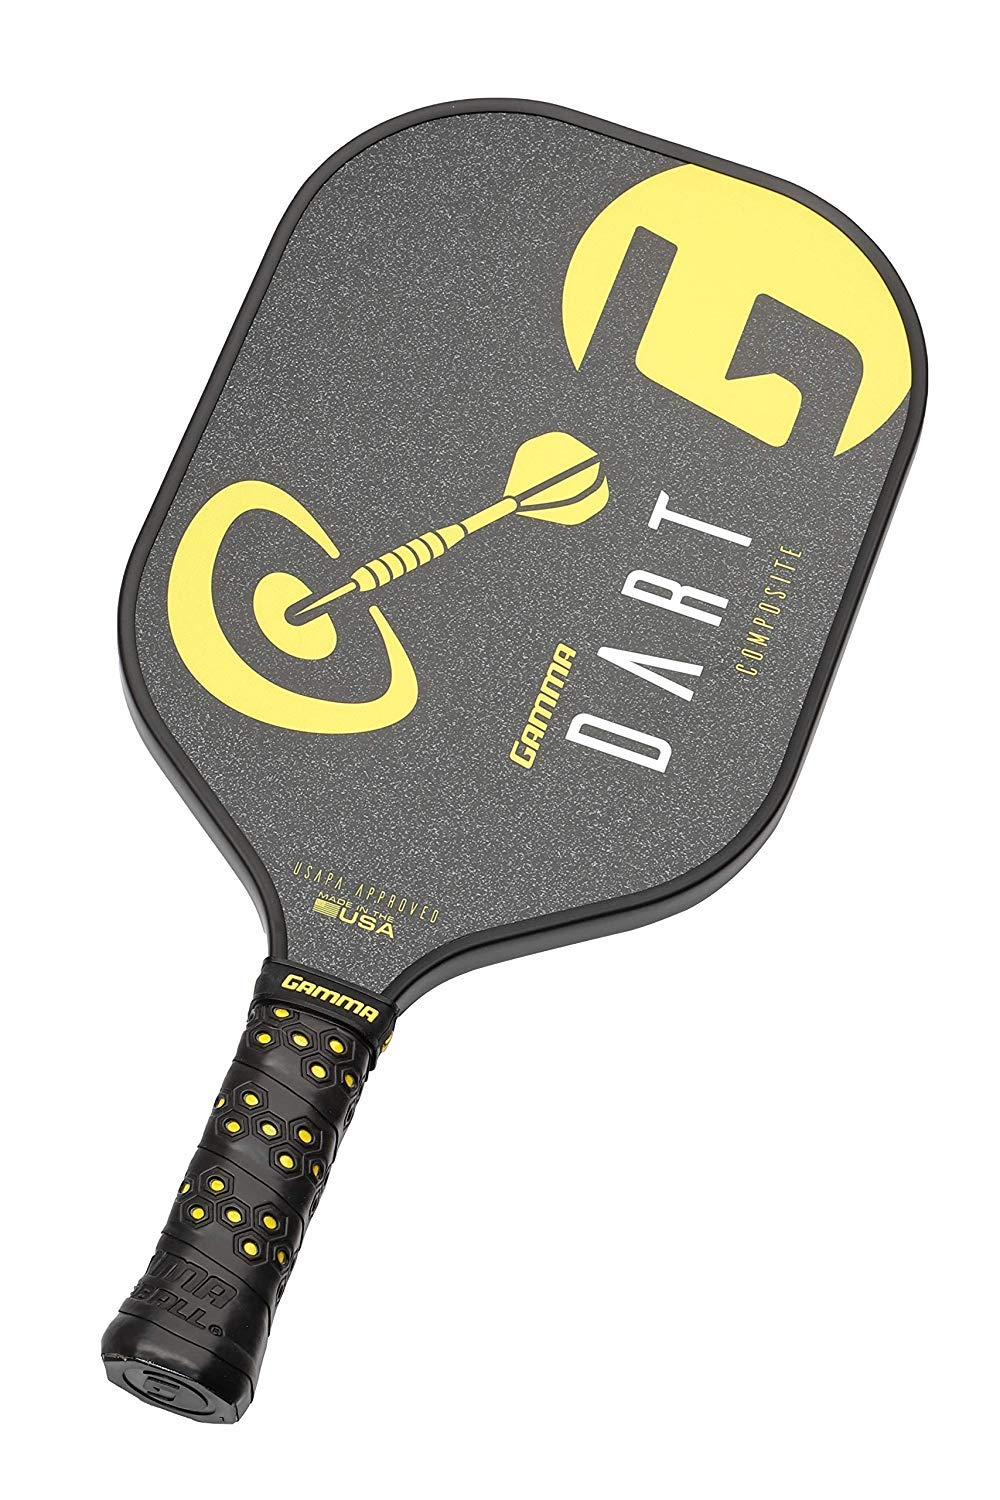 Amazon.com: Pala de Pickleball GAMMA Poly Core: paletas de ...